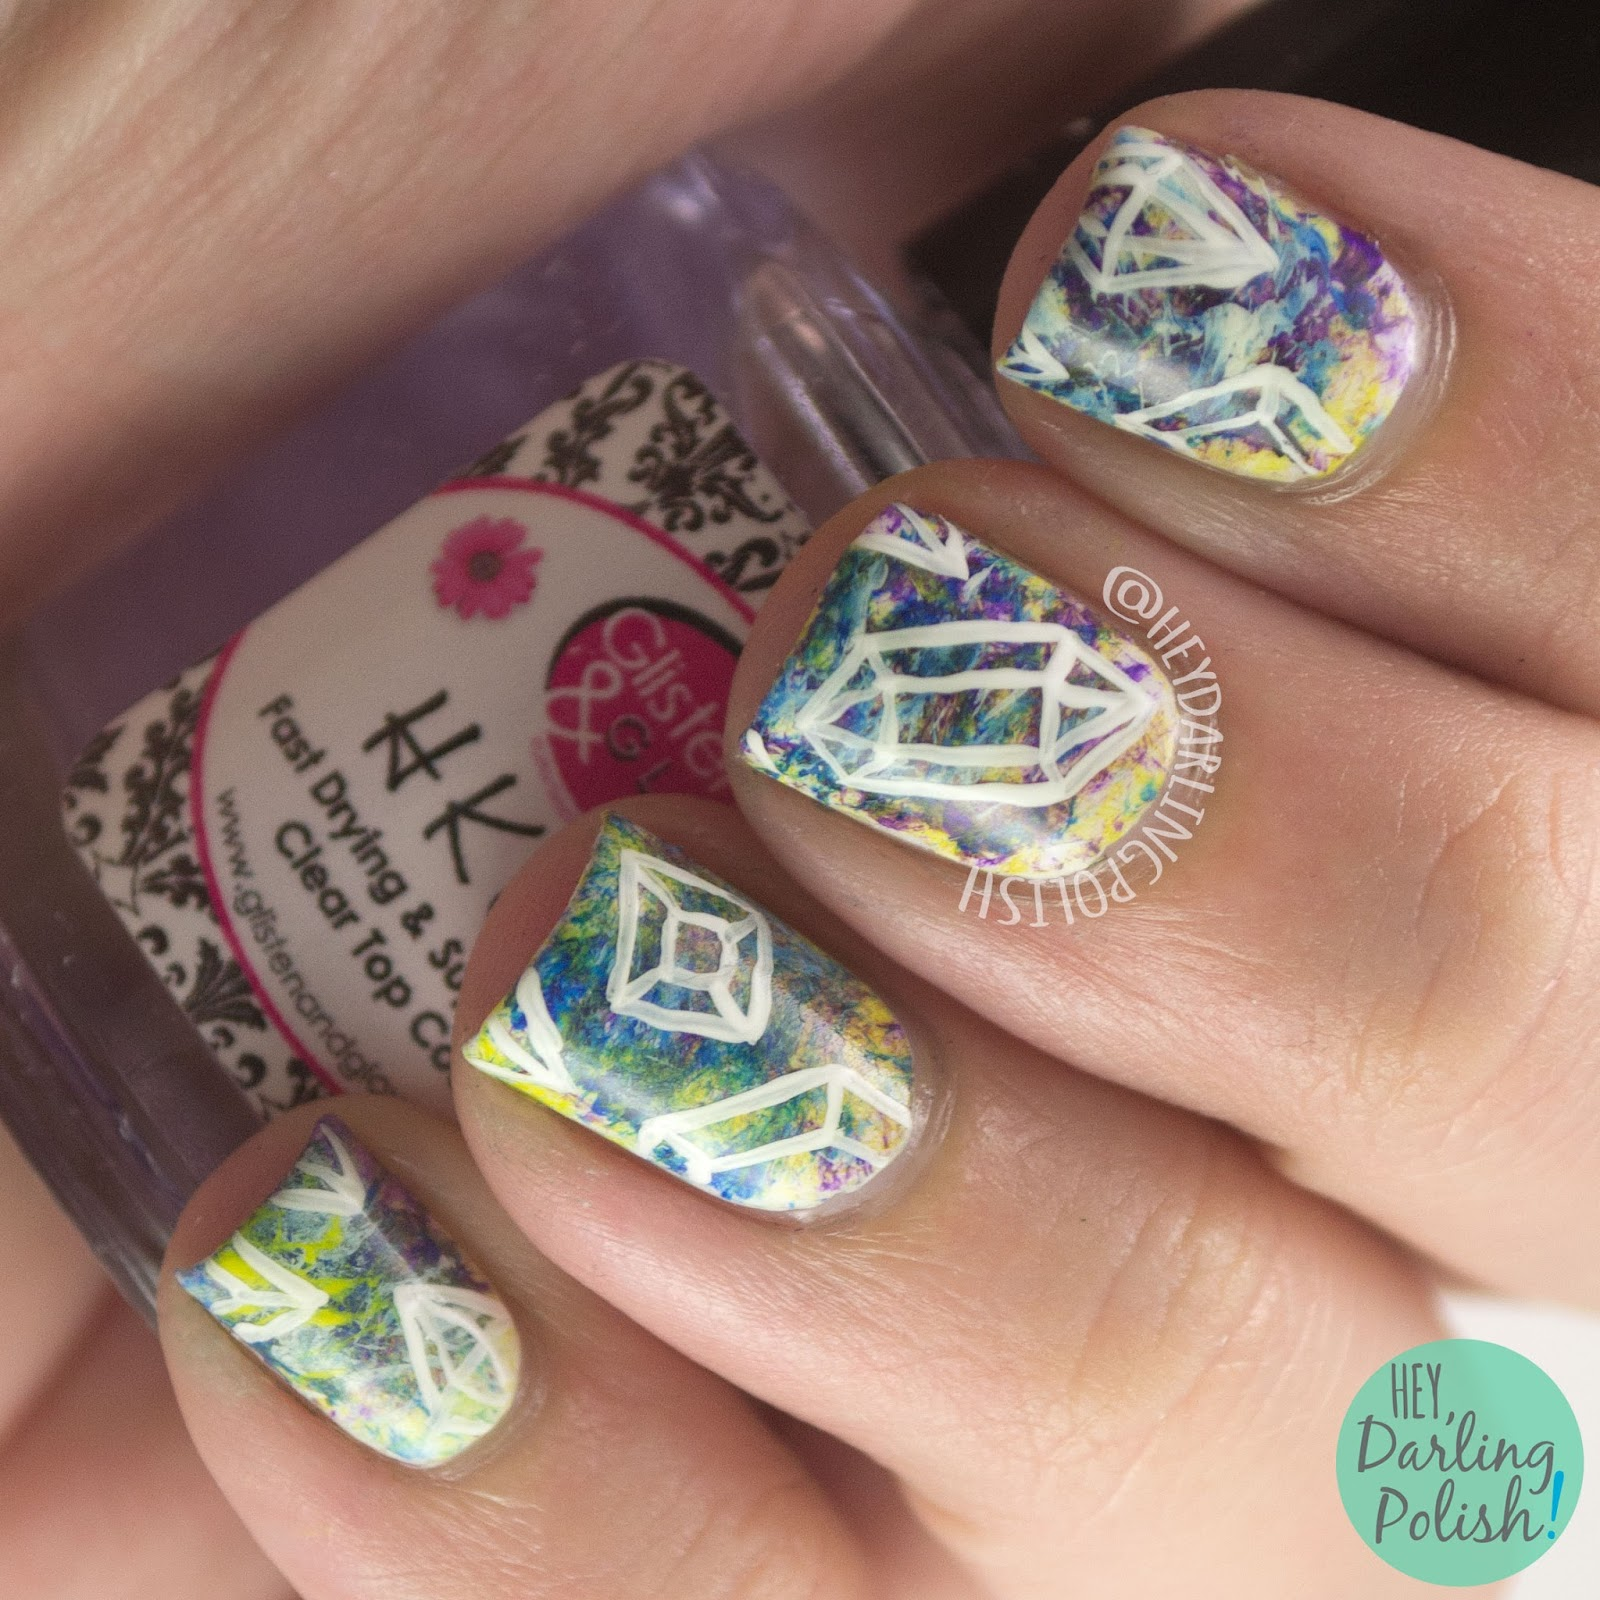 nails, nail art, nail polish, geometric, hey darling polish, the nail challenge collaborative, freehand